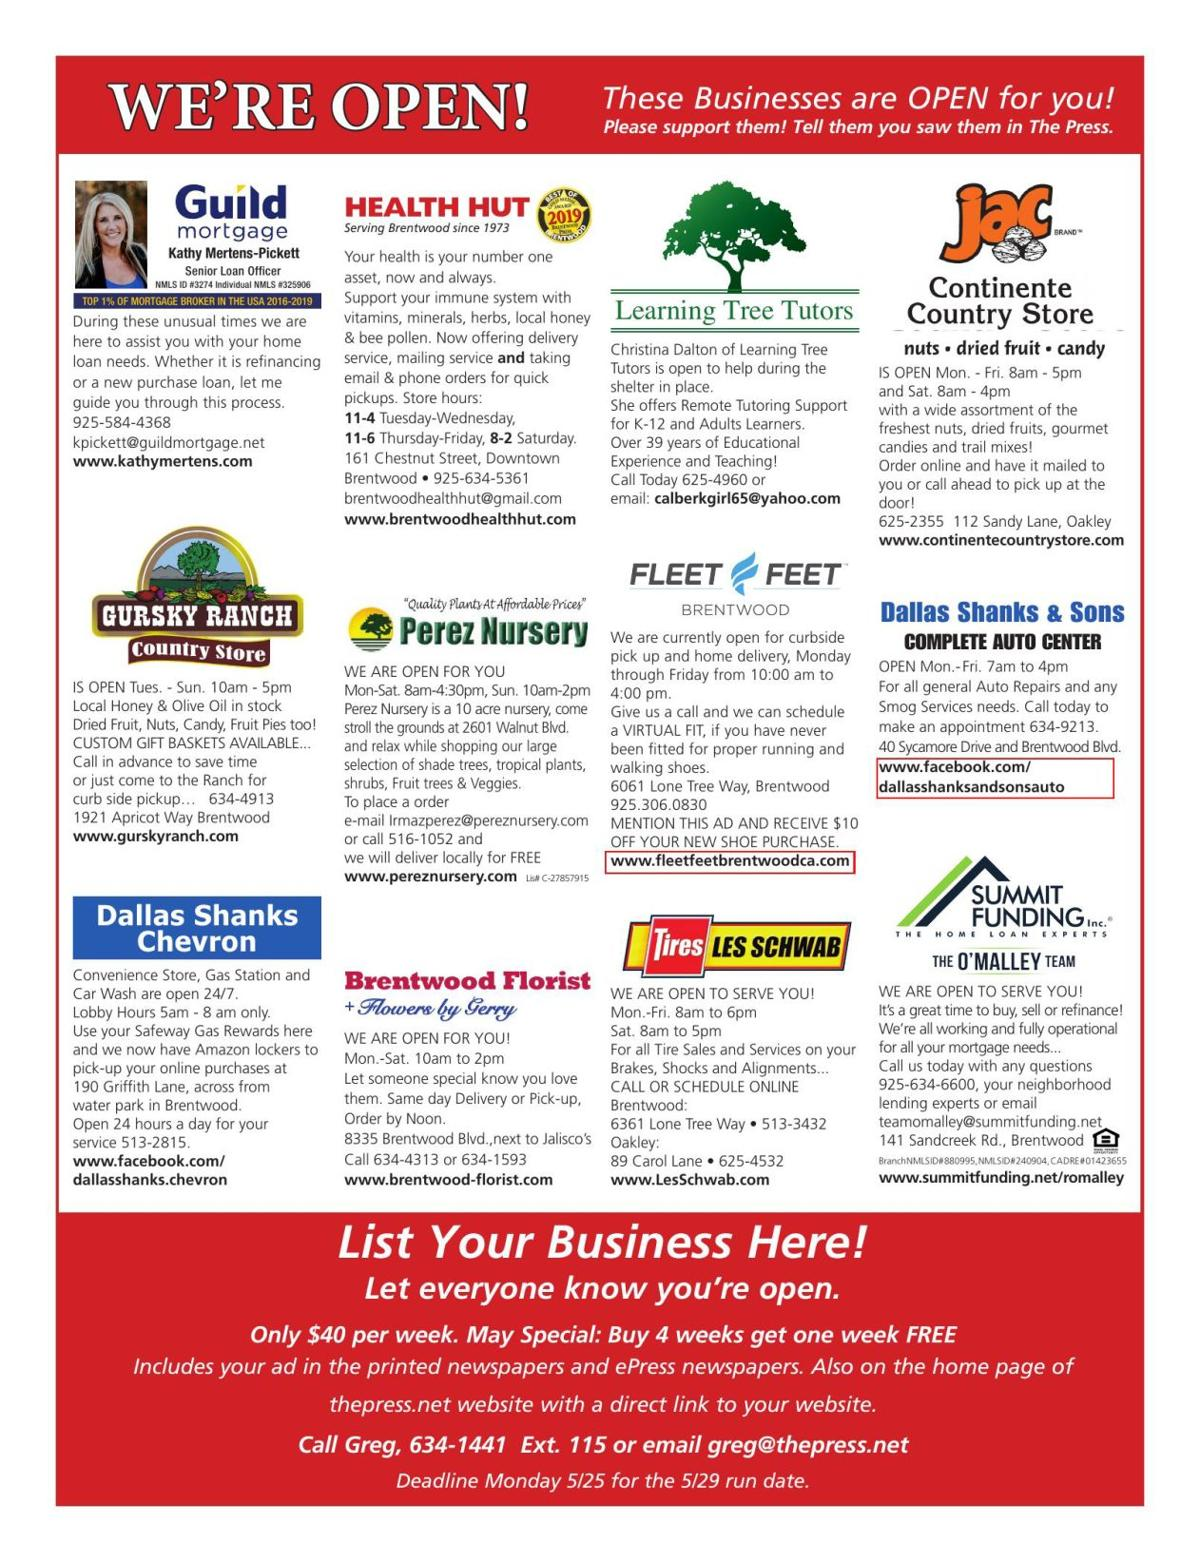 We're Open! These professional businesses are ready to help you!